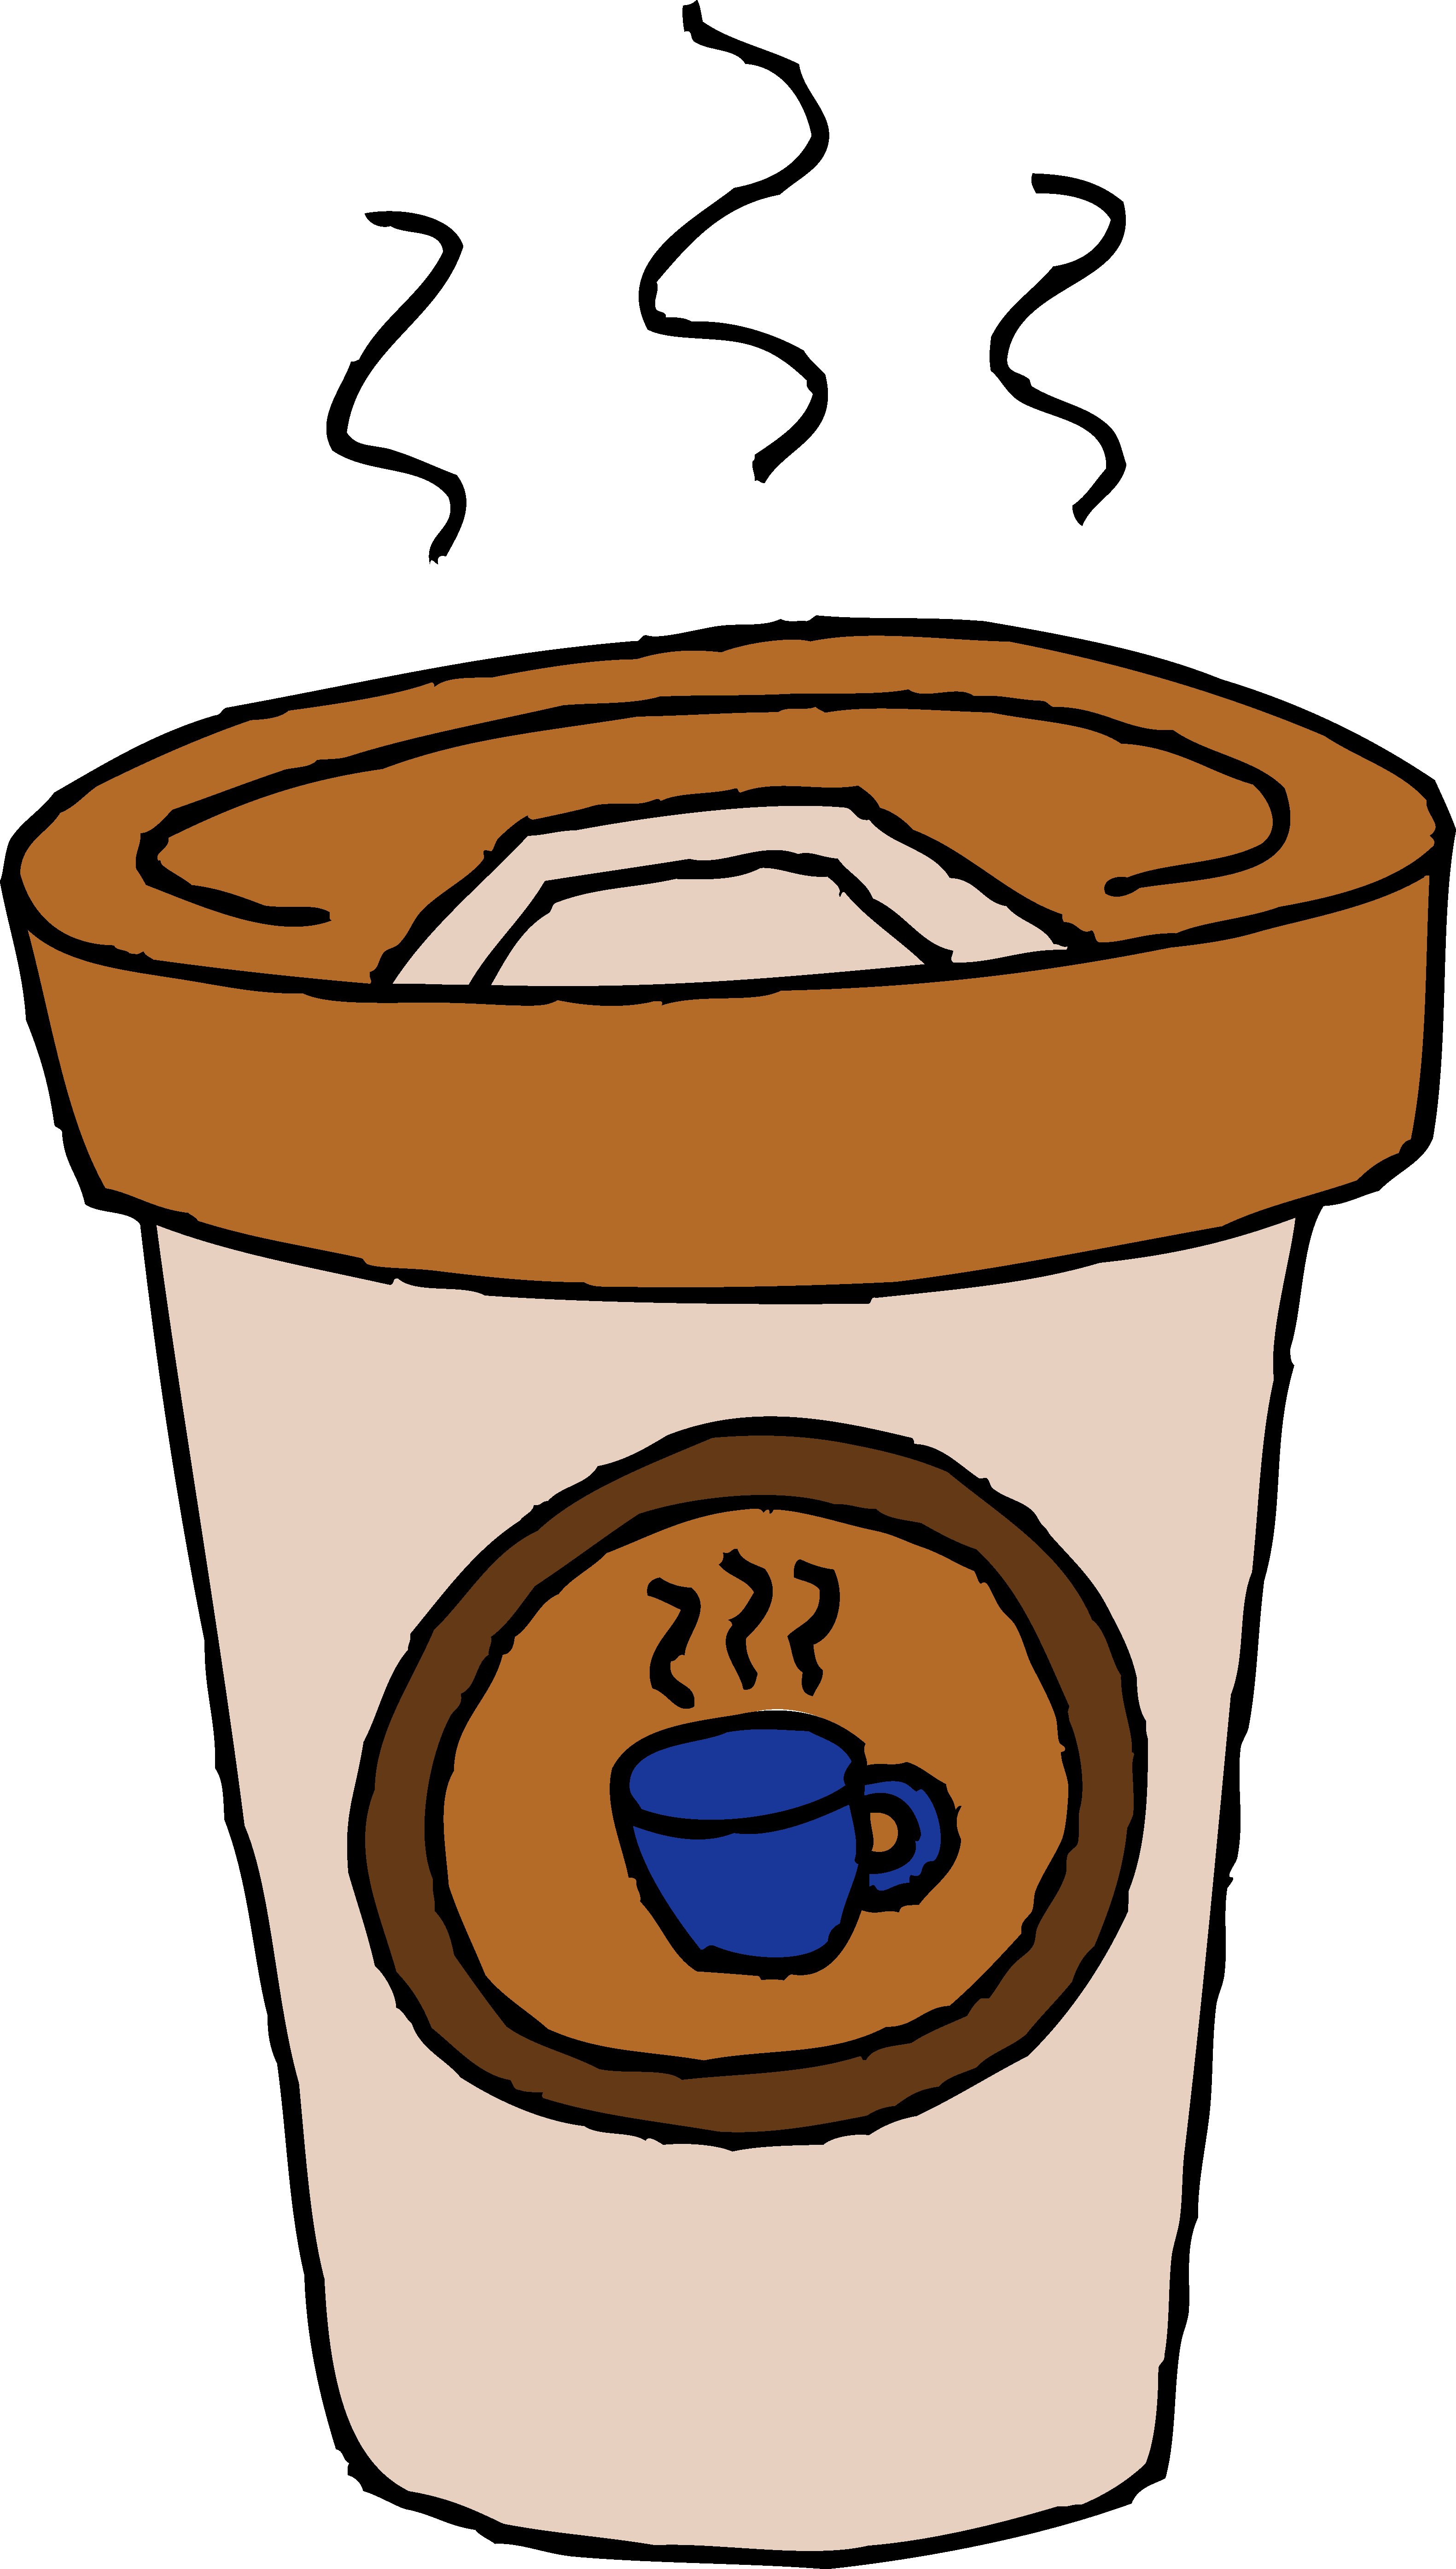 jpg transparent download Hot cafe latte clip. Dj clipart